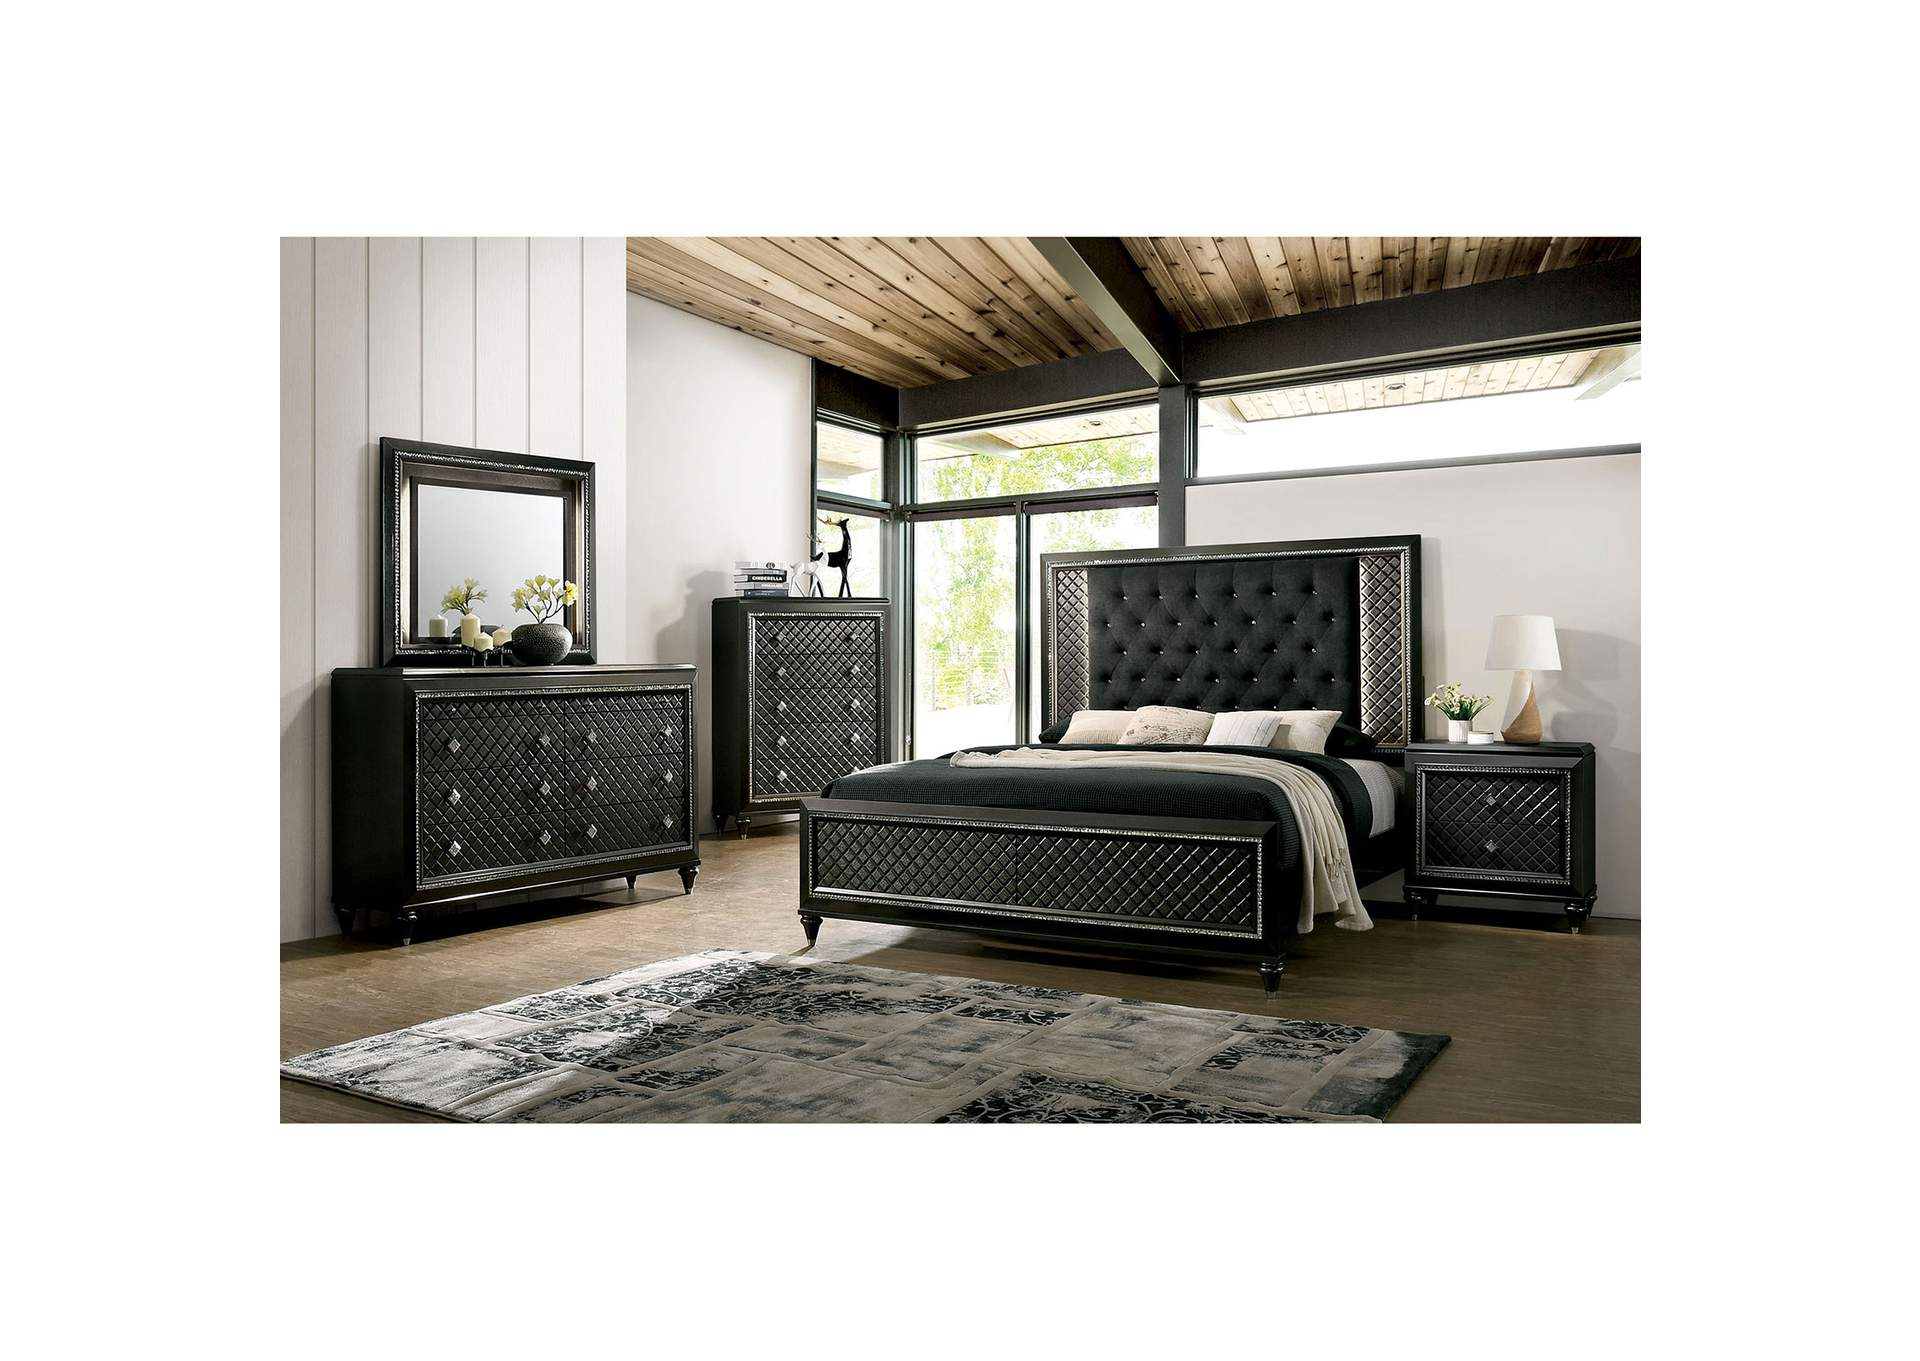 Demetria Black/Metallic Gray LED California King Panel Bed w/Dresser and Mirror,Furniture of America